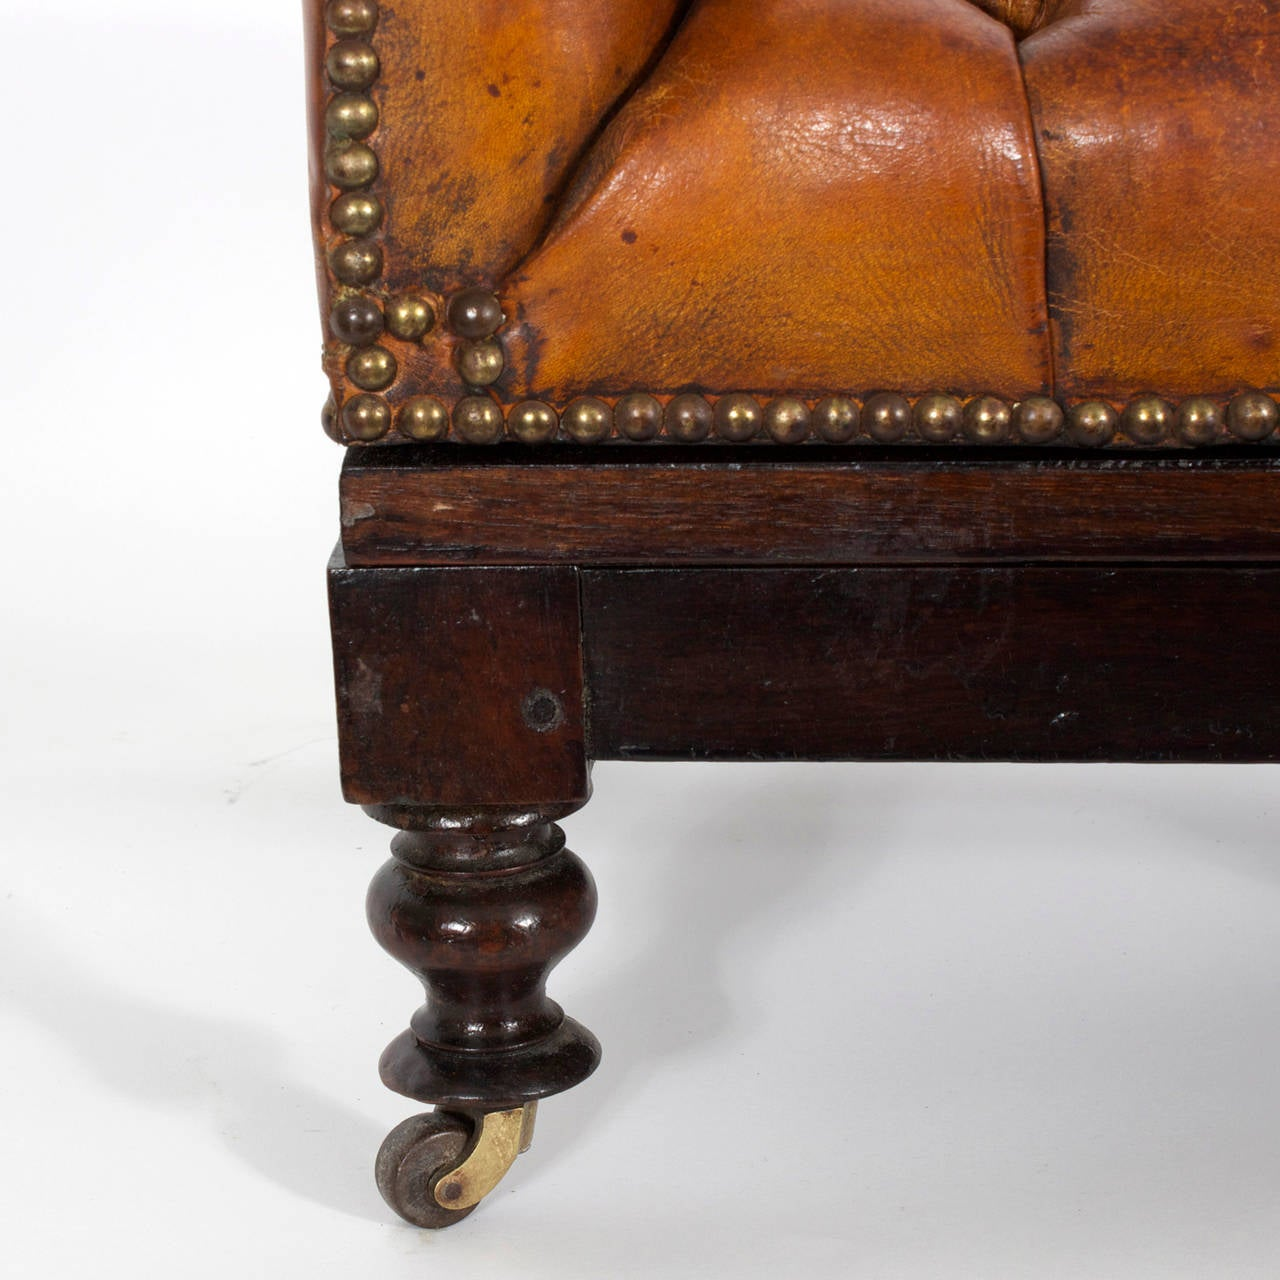 19th Century Tufted Leather Foot Stool or Bench, with Raising Capabilities For Sale 1